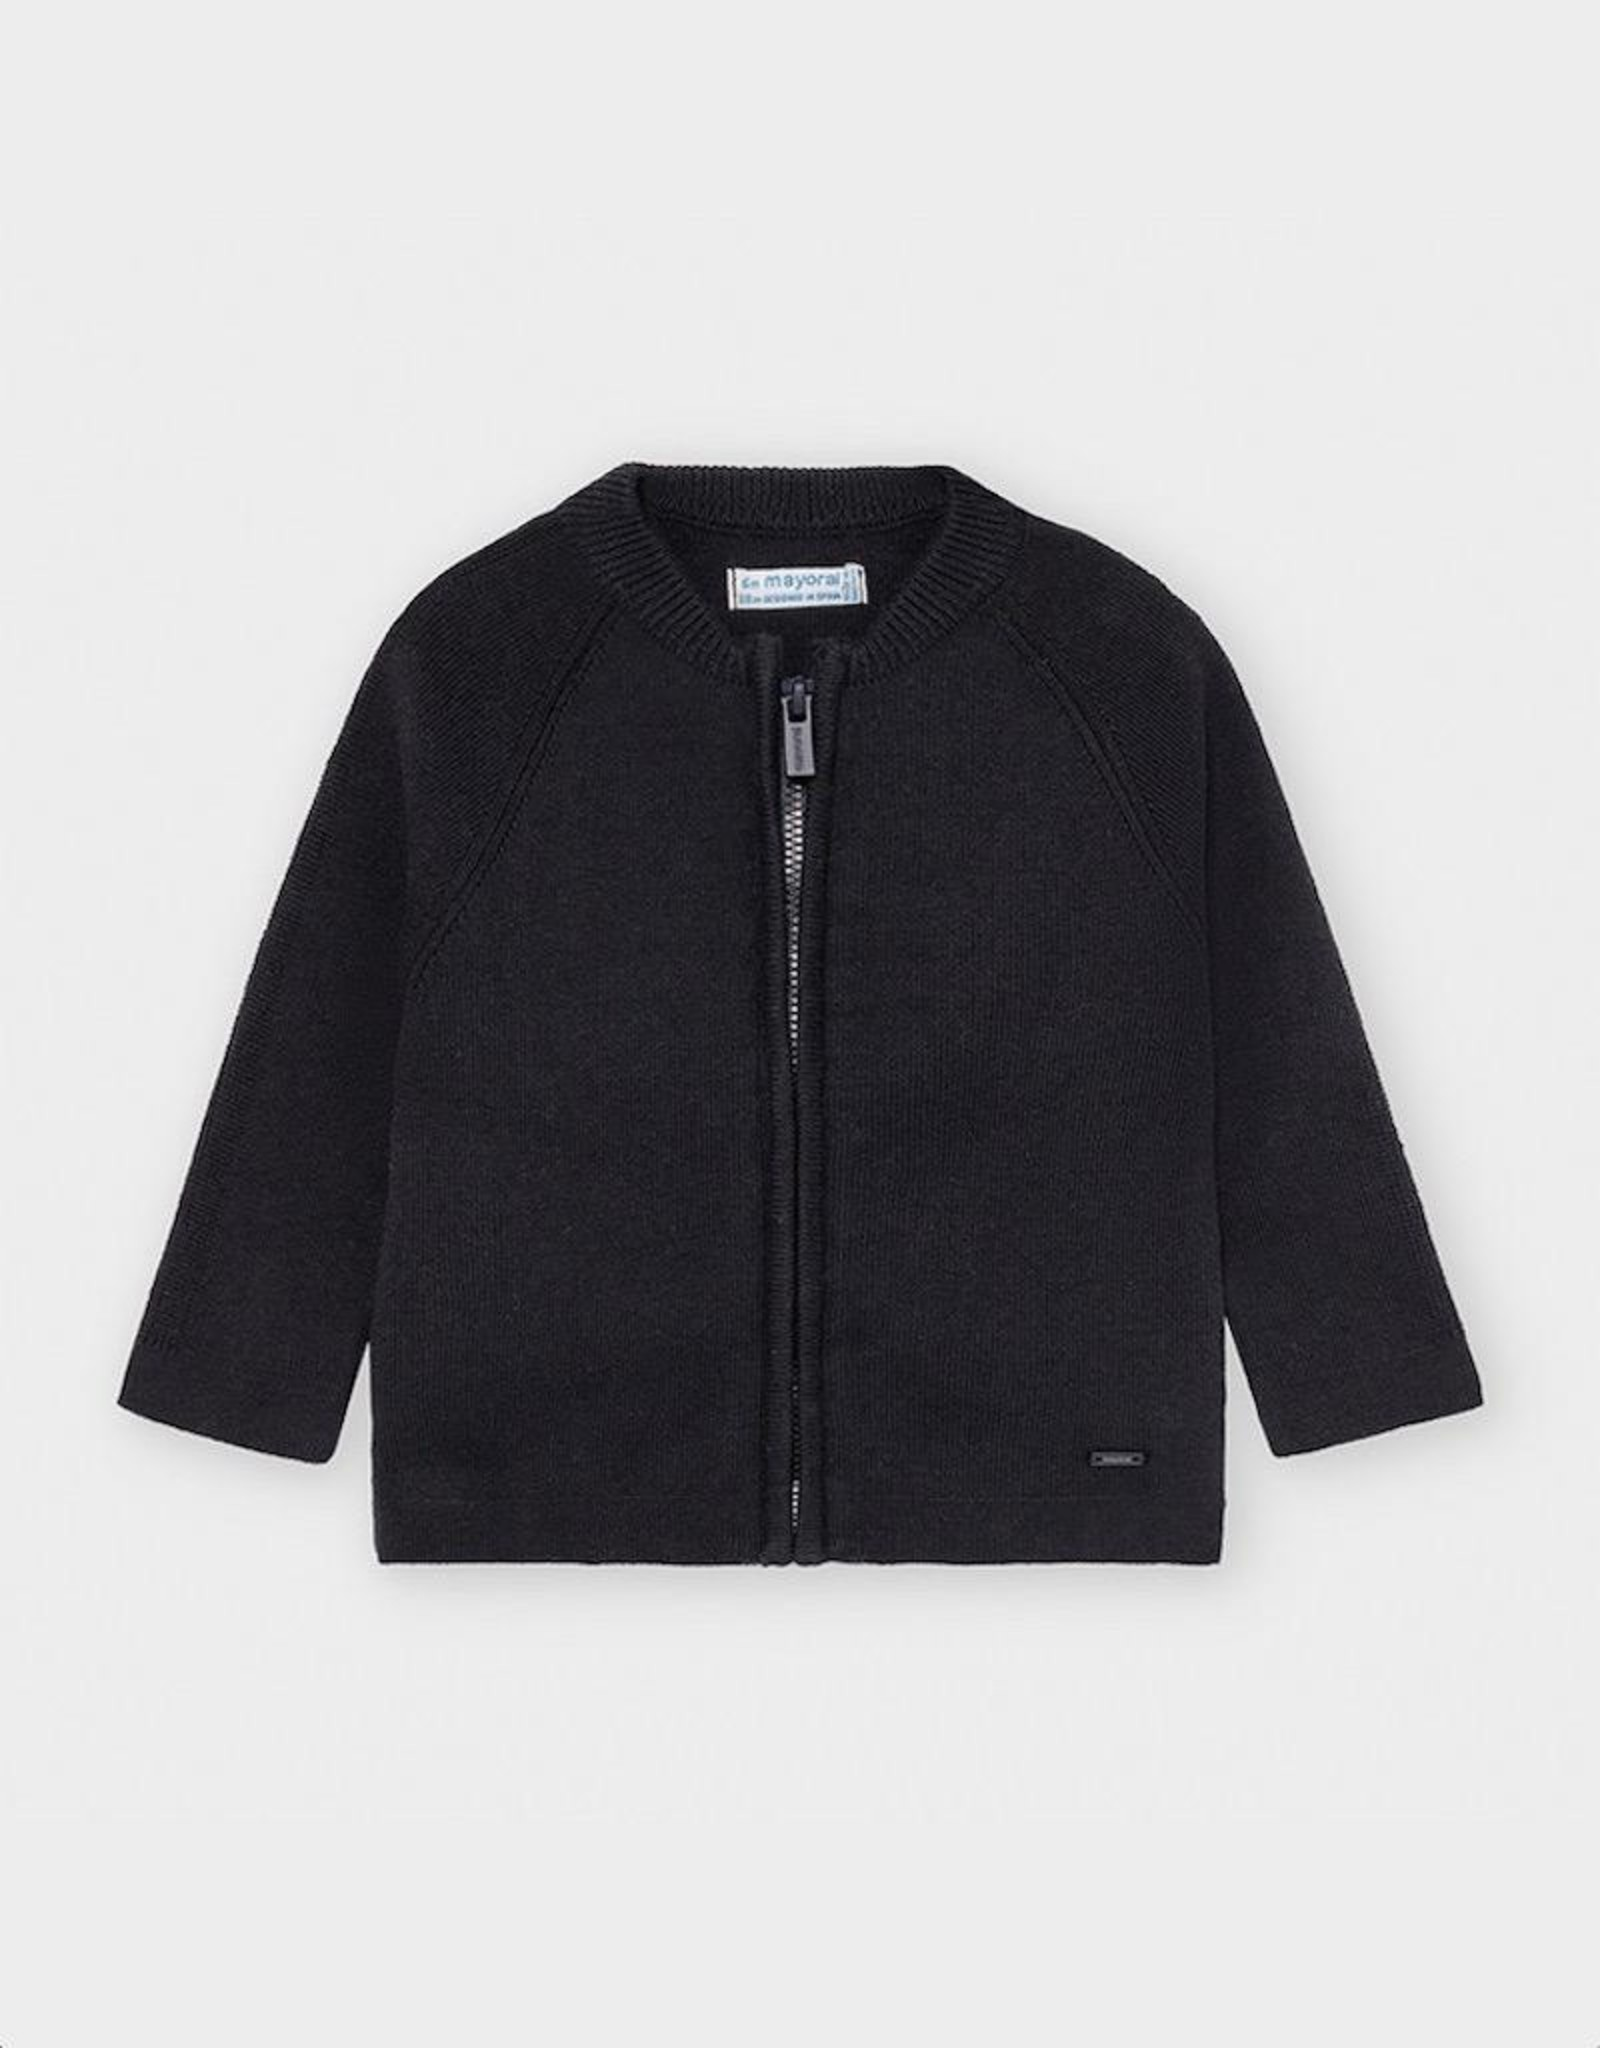 Mayoral Woven Knit Jacket in Blue